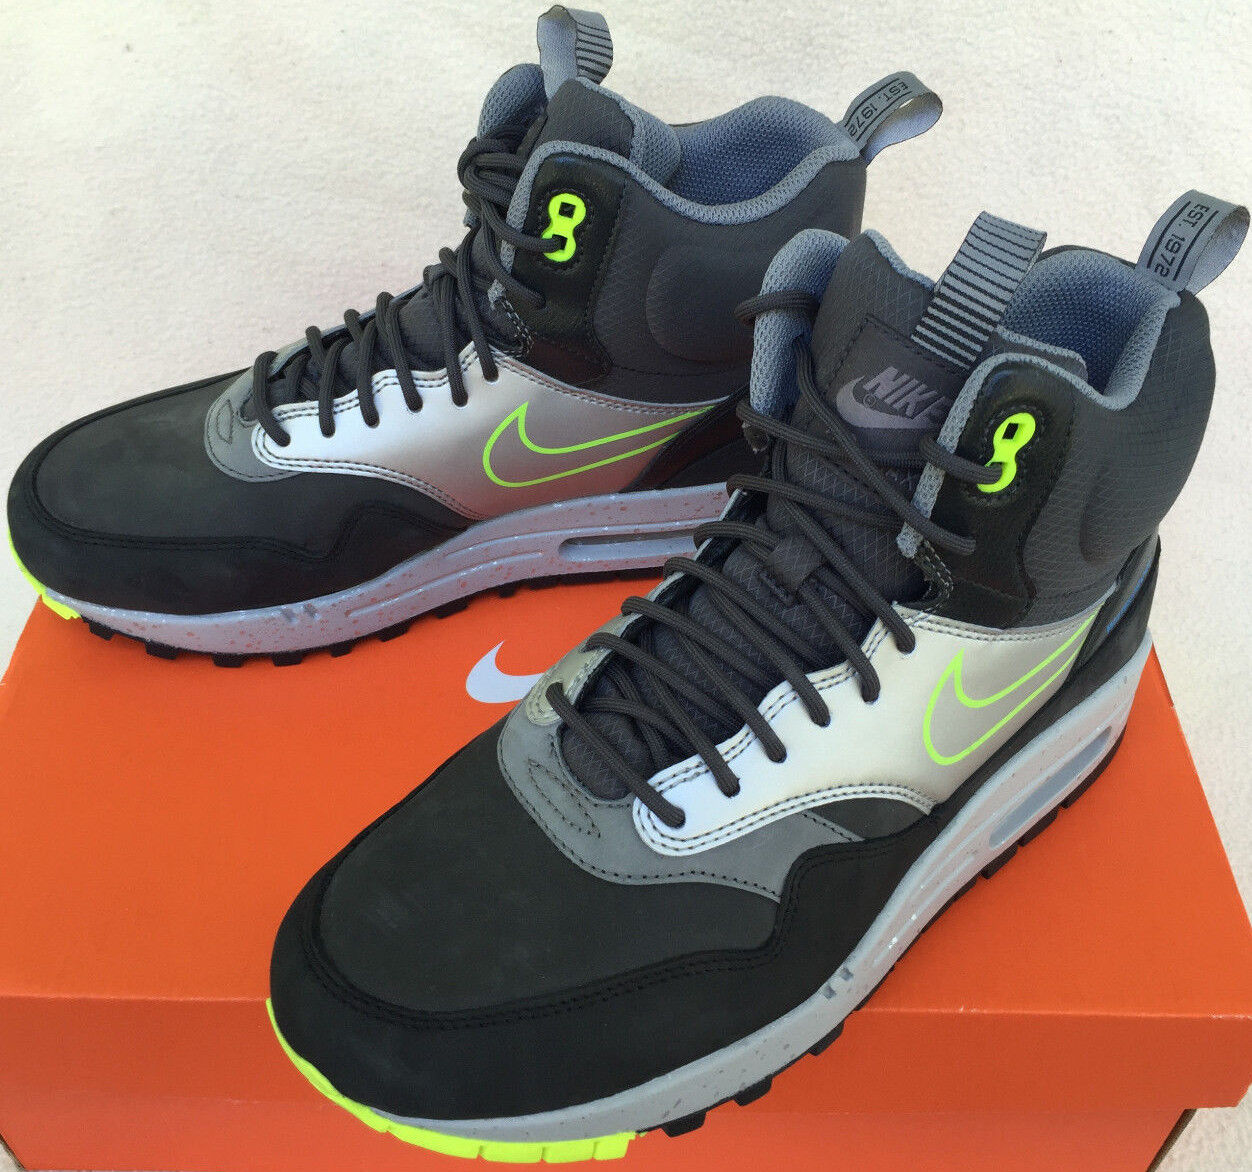 Nike Air Max 1 Mid Sneakerboot WP 685269-002 Noir Volt Chaussures Bottes femmes 8.5